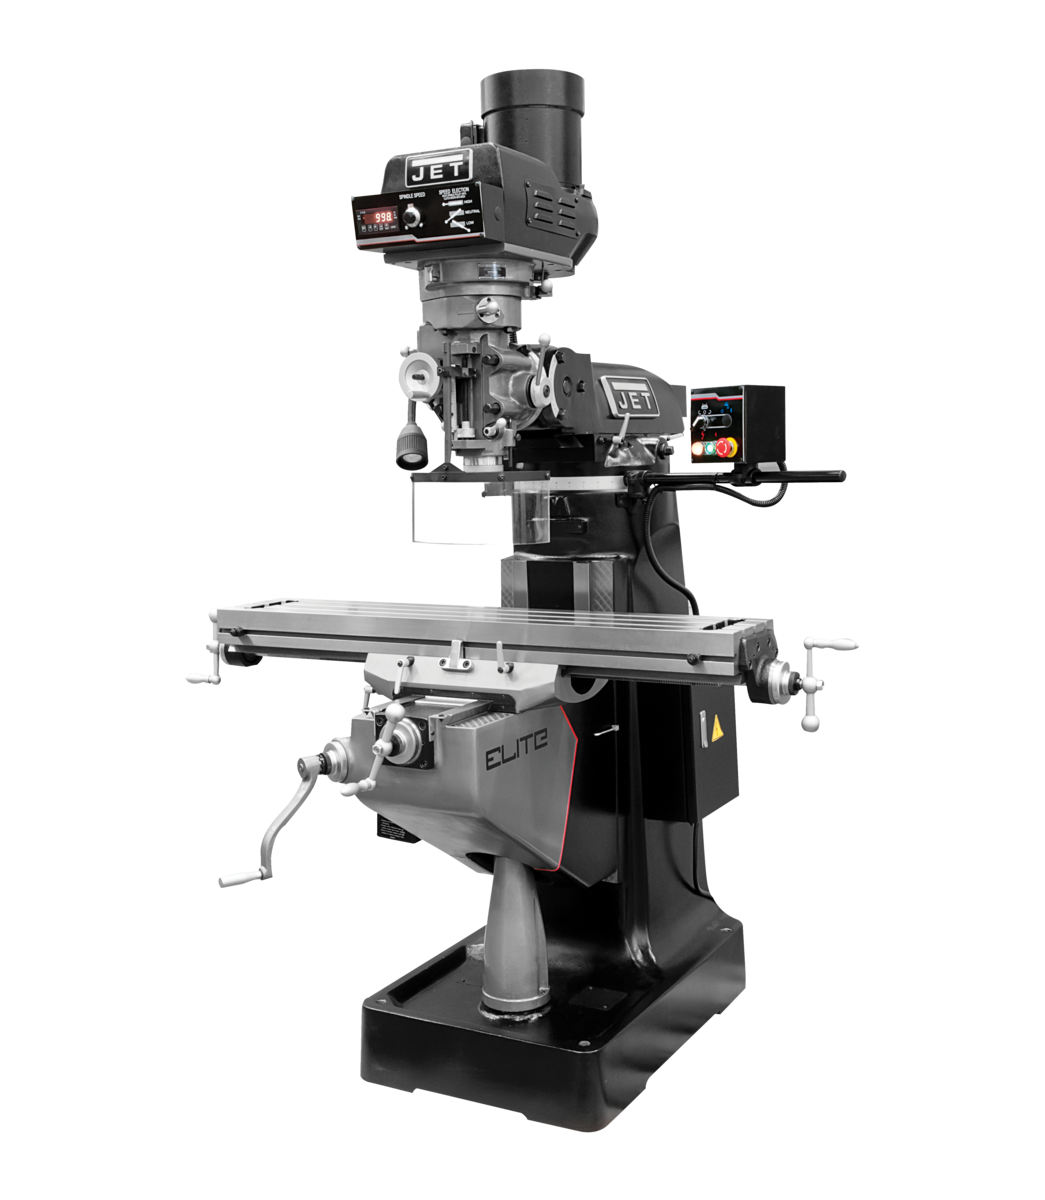 EVS-949 Mill with 3-Axis ACU-RITE 303  (Knee) DRO and X, Y-Axis JET Powerfeeds and USA Made Air Draw Bar